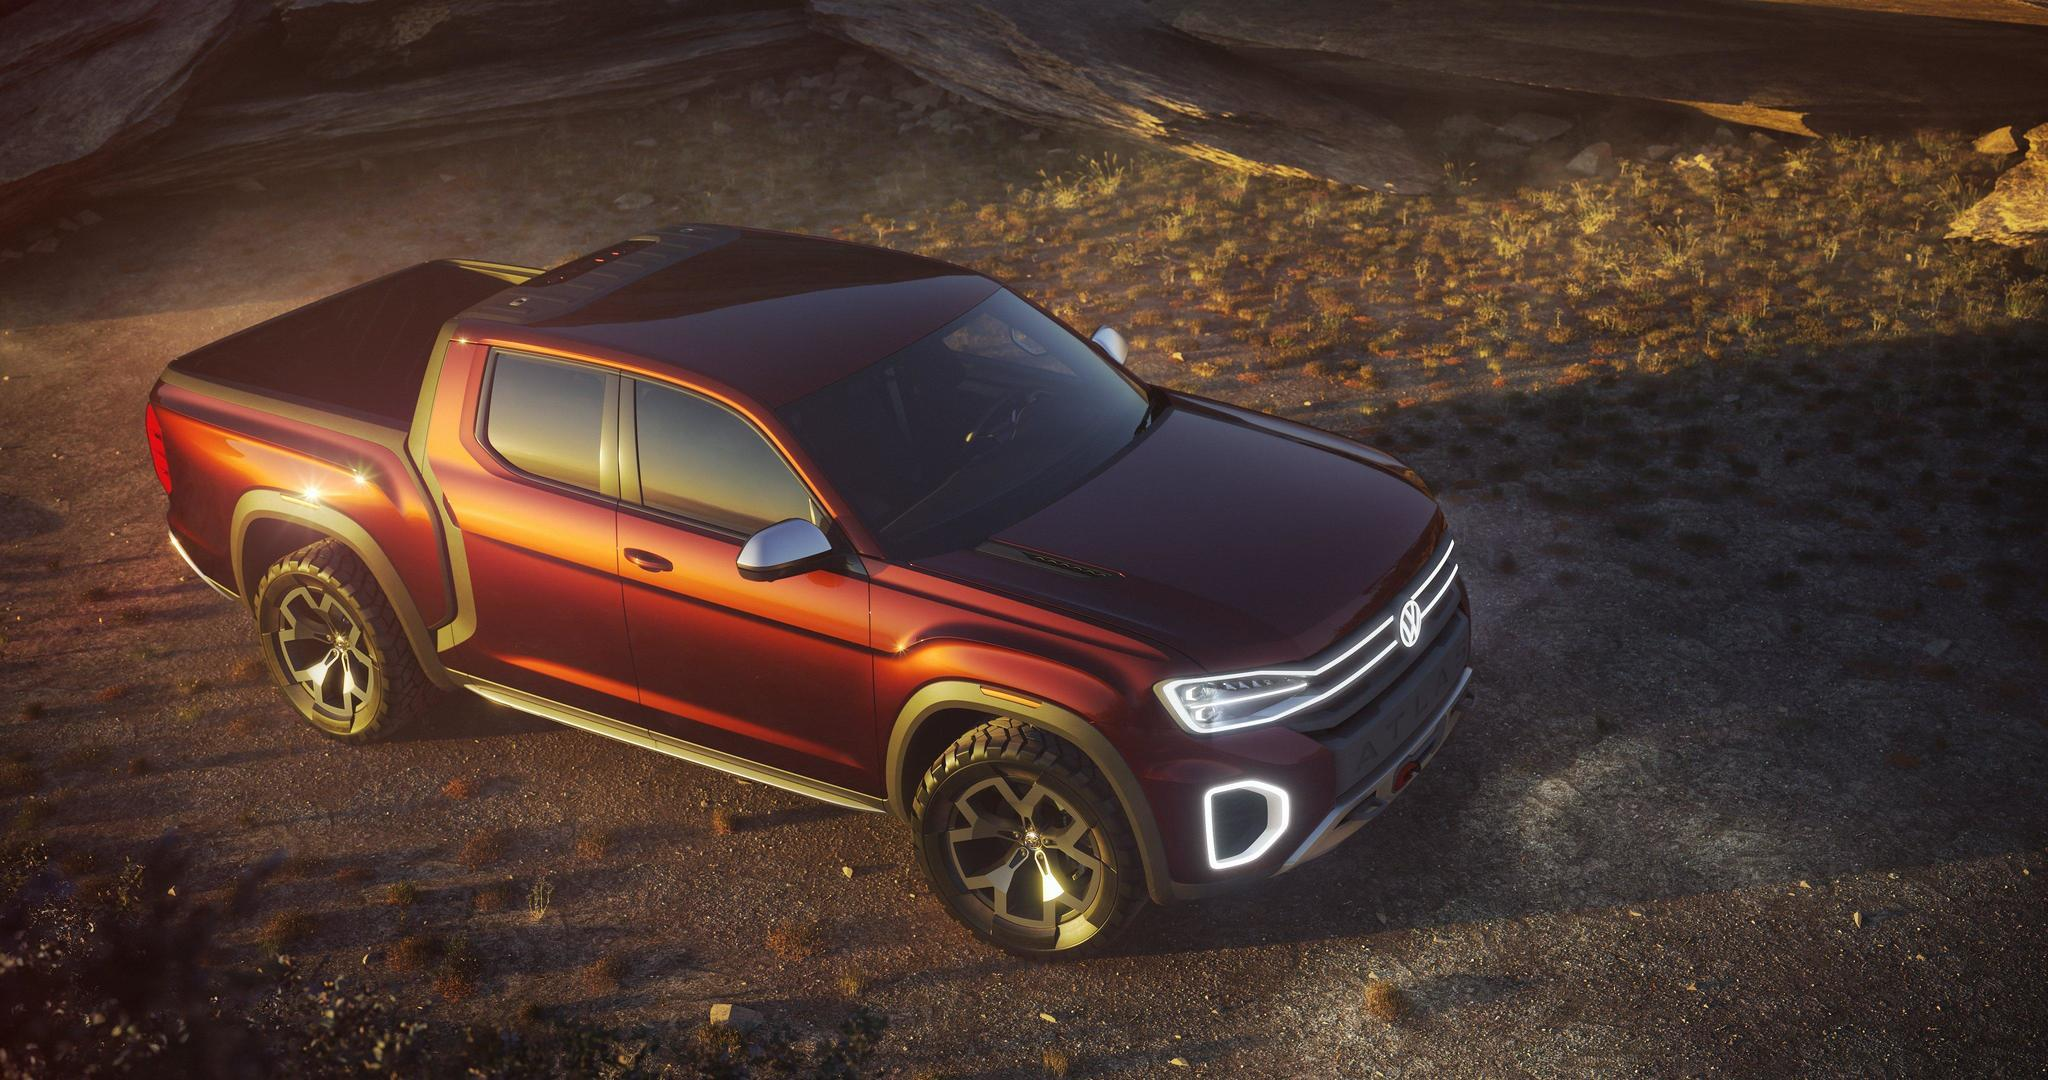 Volkswagen Launches Small Pickup But Makes No Promises For North